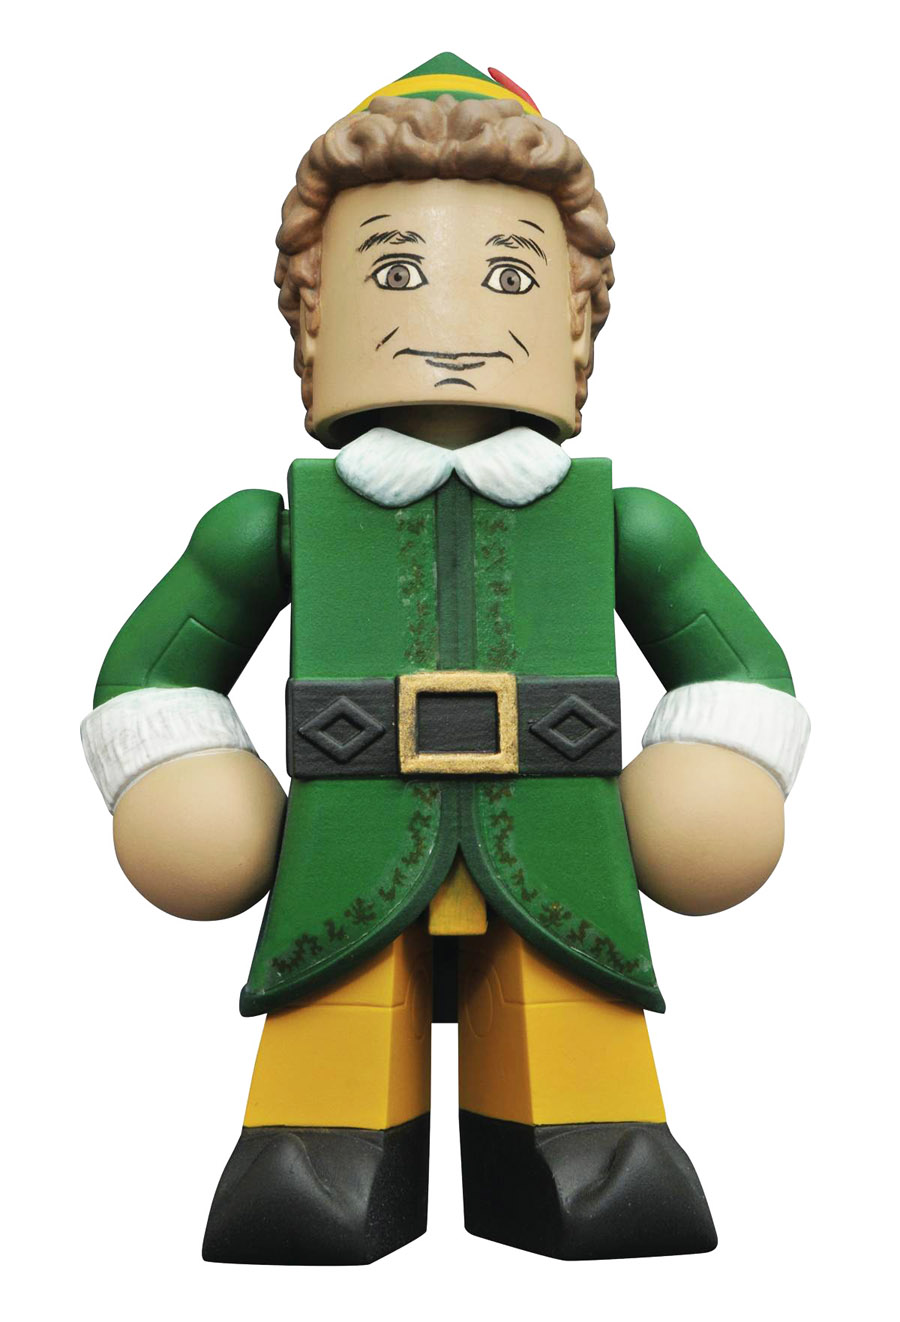 Buddy the Elf Vinimate Vinyl Figure